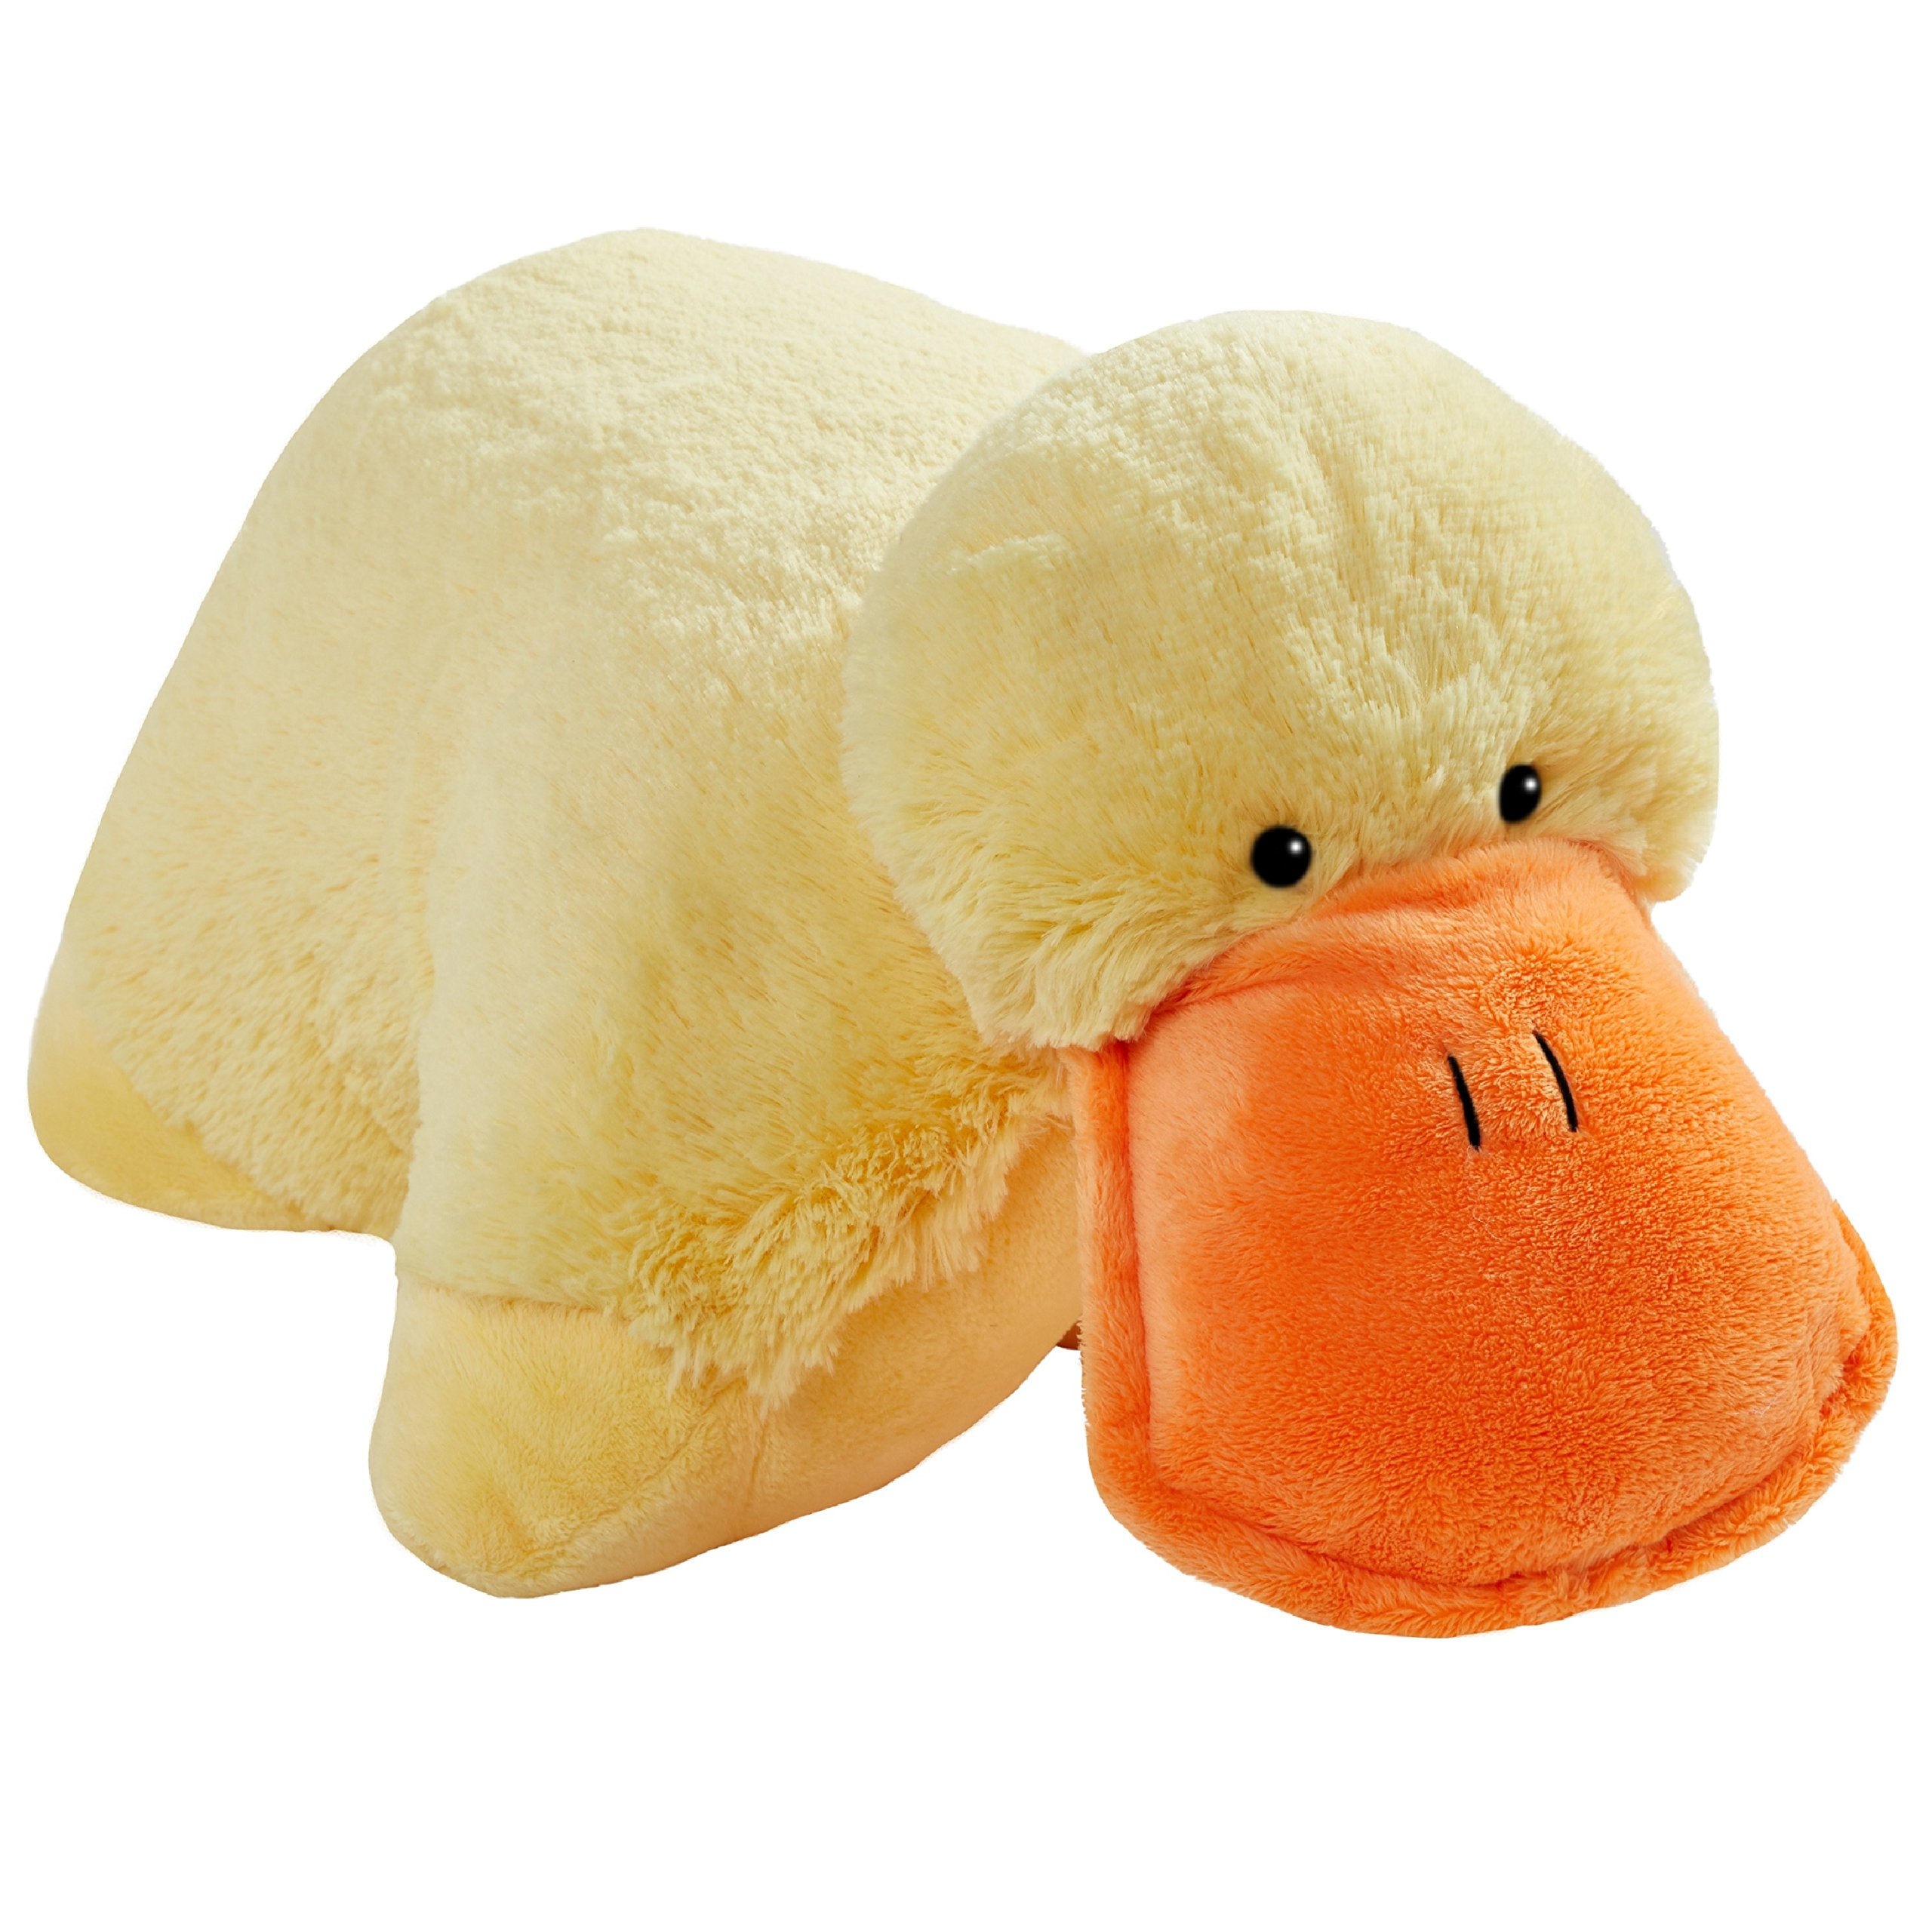 Pillow Pets My Signature, Puffy Duck, 18'' Stuffed Animal Plush Toy by Pillow Pets